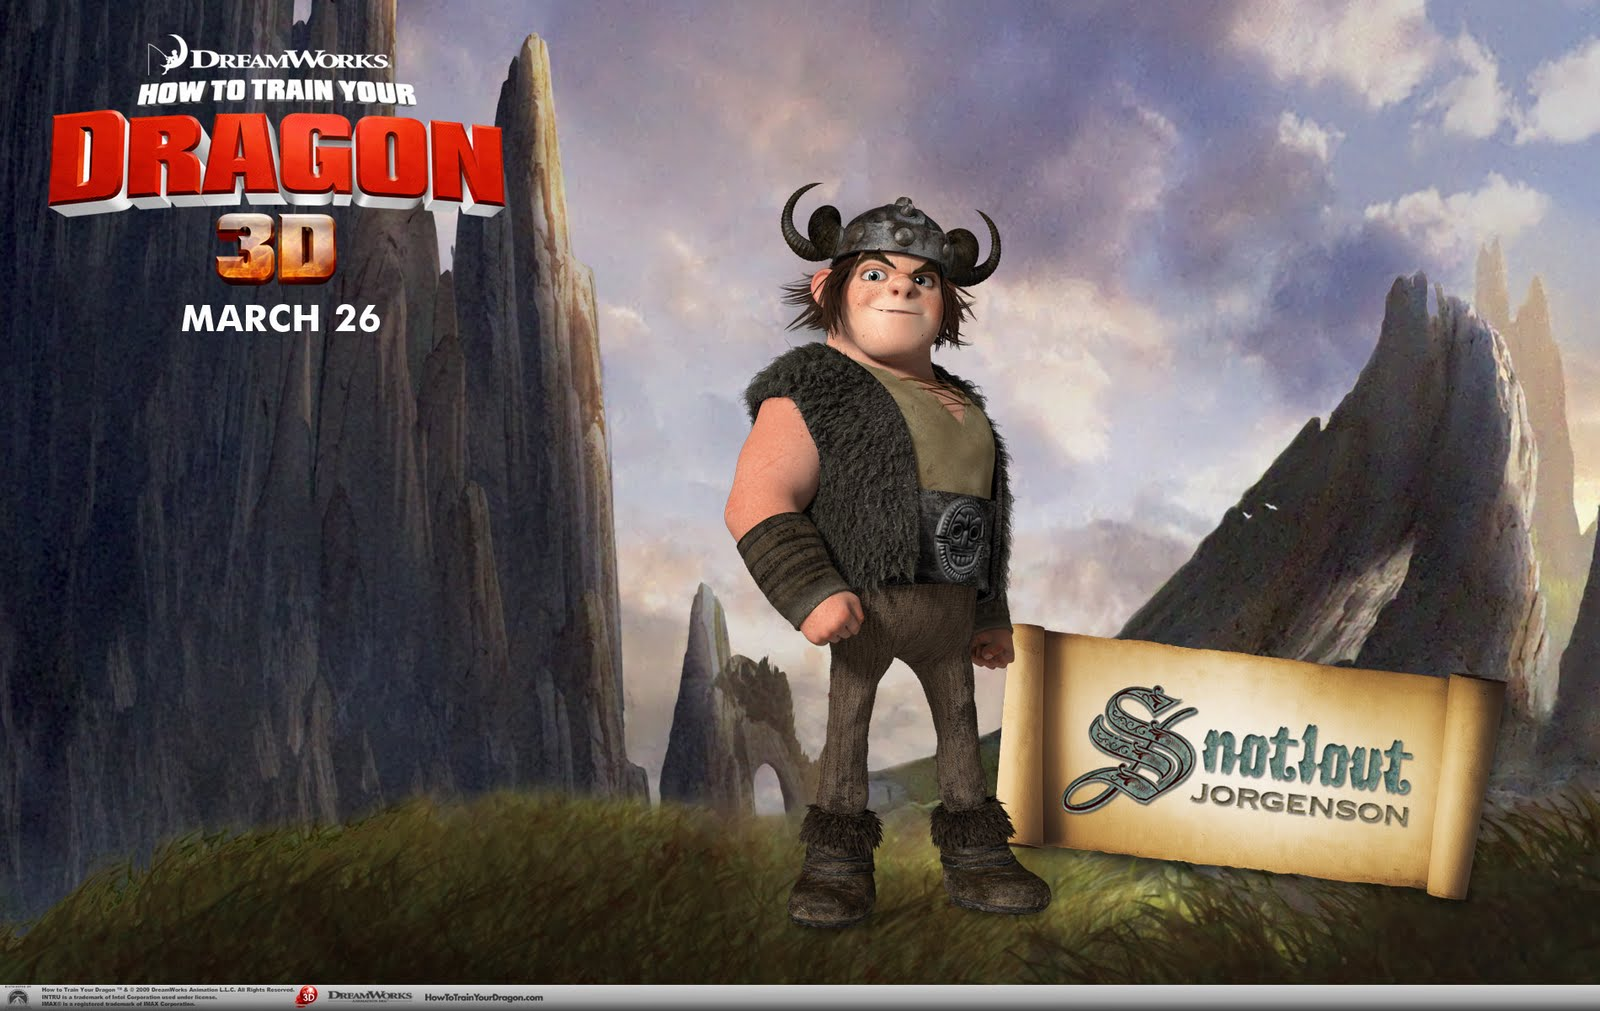 http://2.bp.blogspot.com/_r7NBJQJauD8/S8UaUiPozxI/AAAAAAAAArA/oUtrqltX9bk/s1600/Jonah_Hill_in_How_to_Train_Your_Dragon_Wallpaper_16_1280.jpg